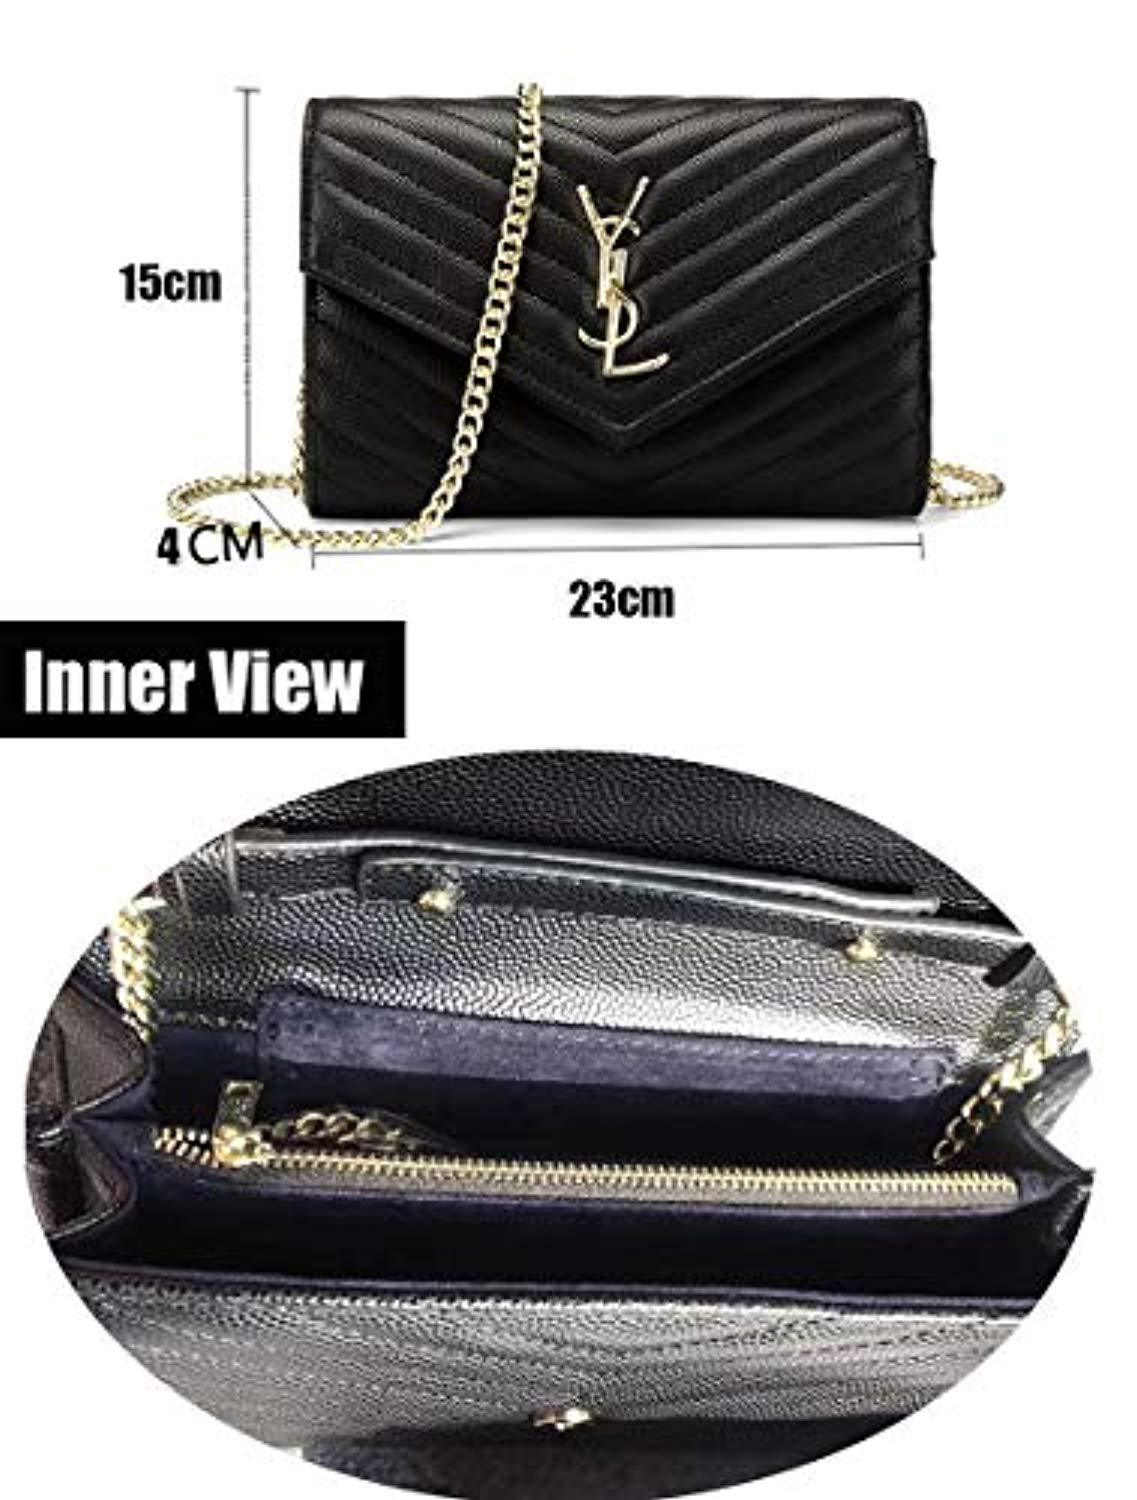 Simple Small Crossbody Bag Quilted Shoulder Purse With Golden Chain Strap